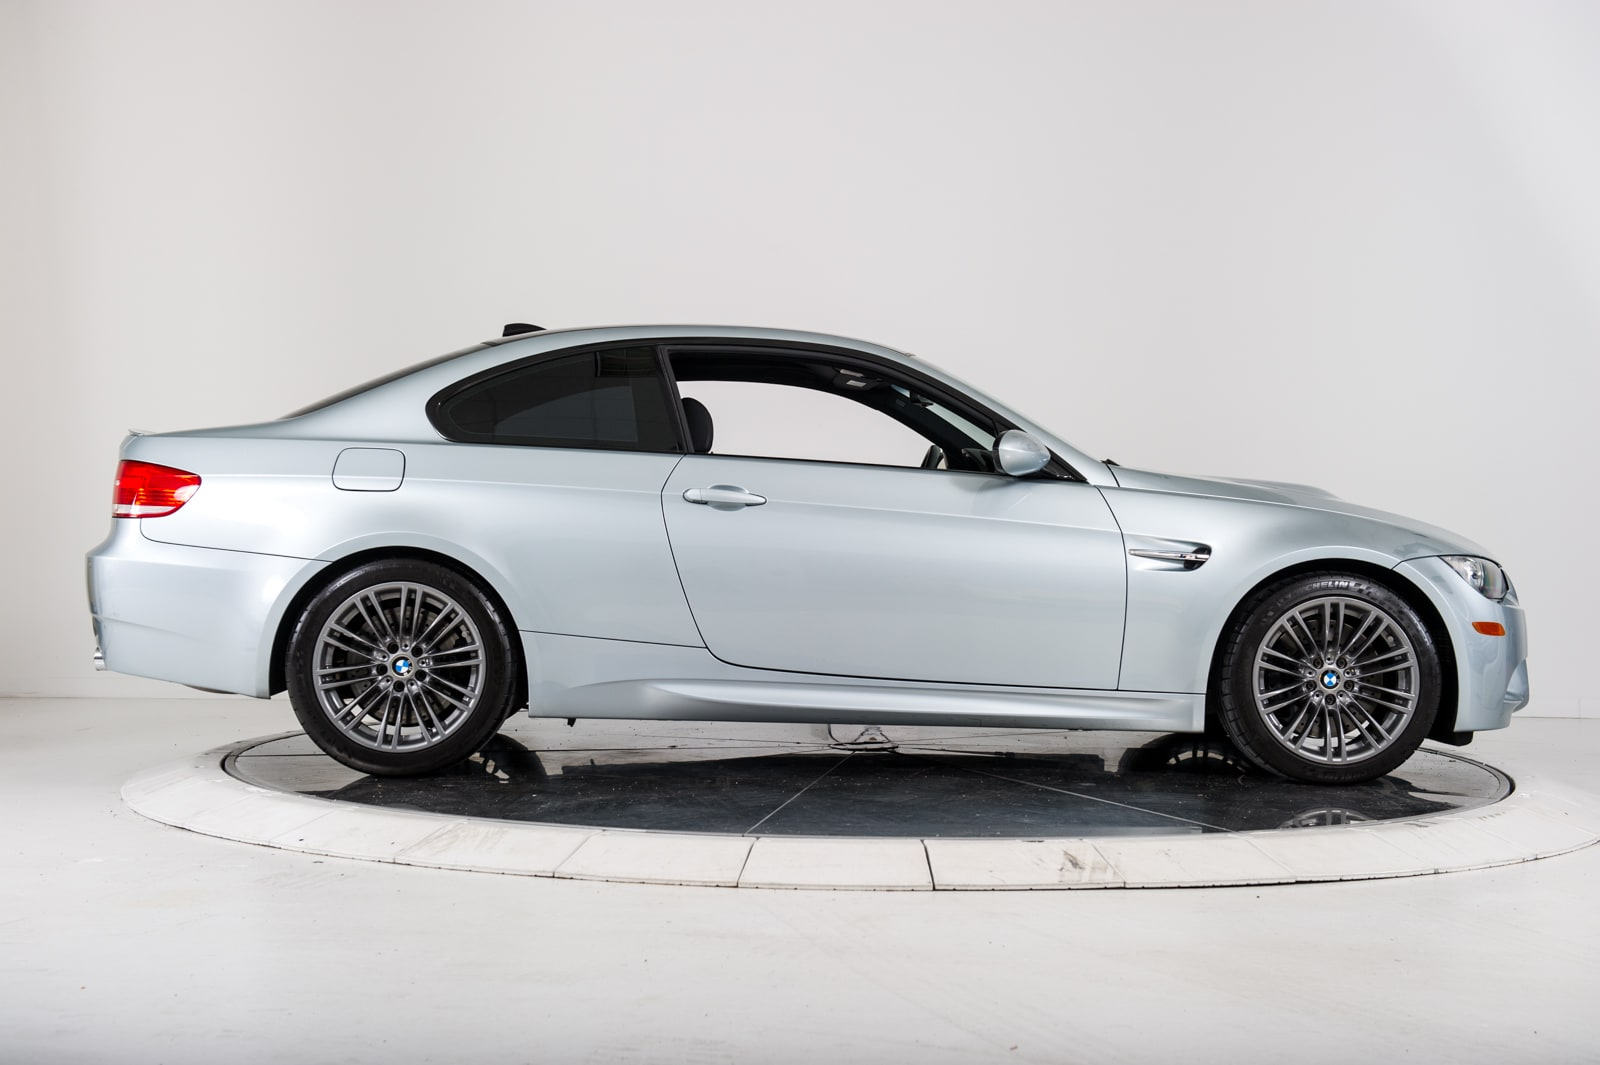 used 2008 bmw m3 coupe for sale plainview near long island ny vin wbswd935x8py39045. Black Bedroom Furniture Sets. Home Design Ideas